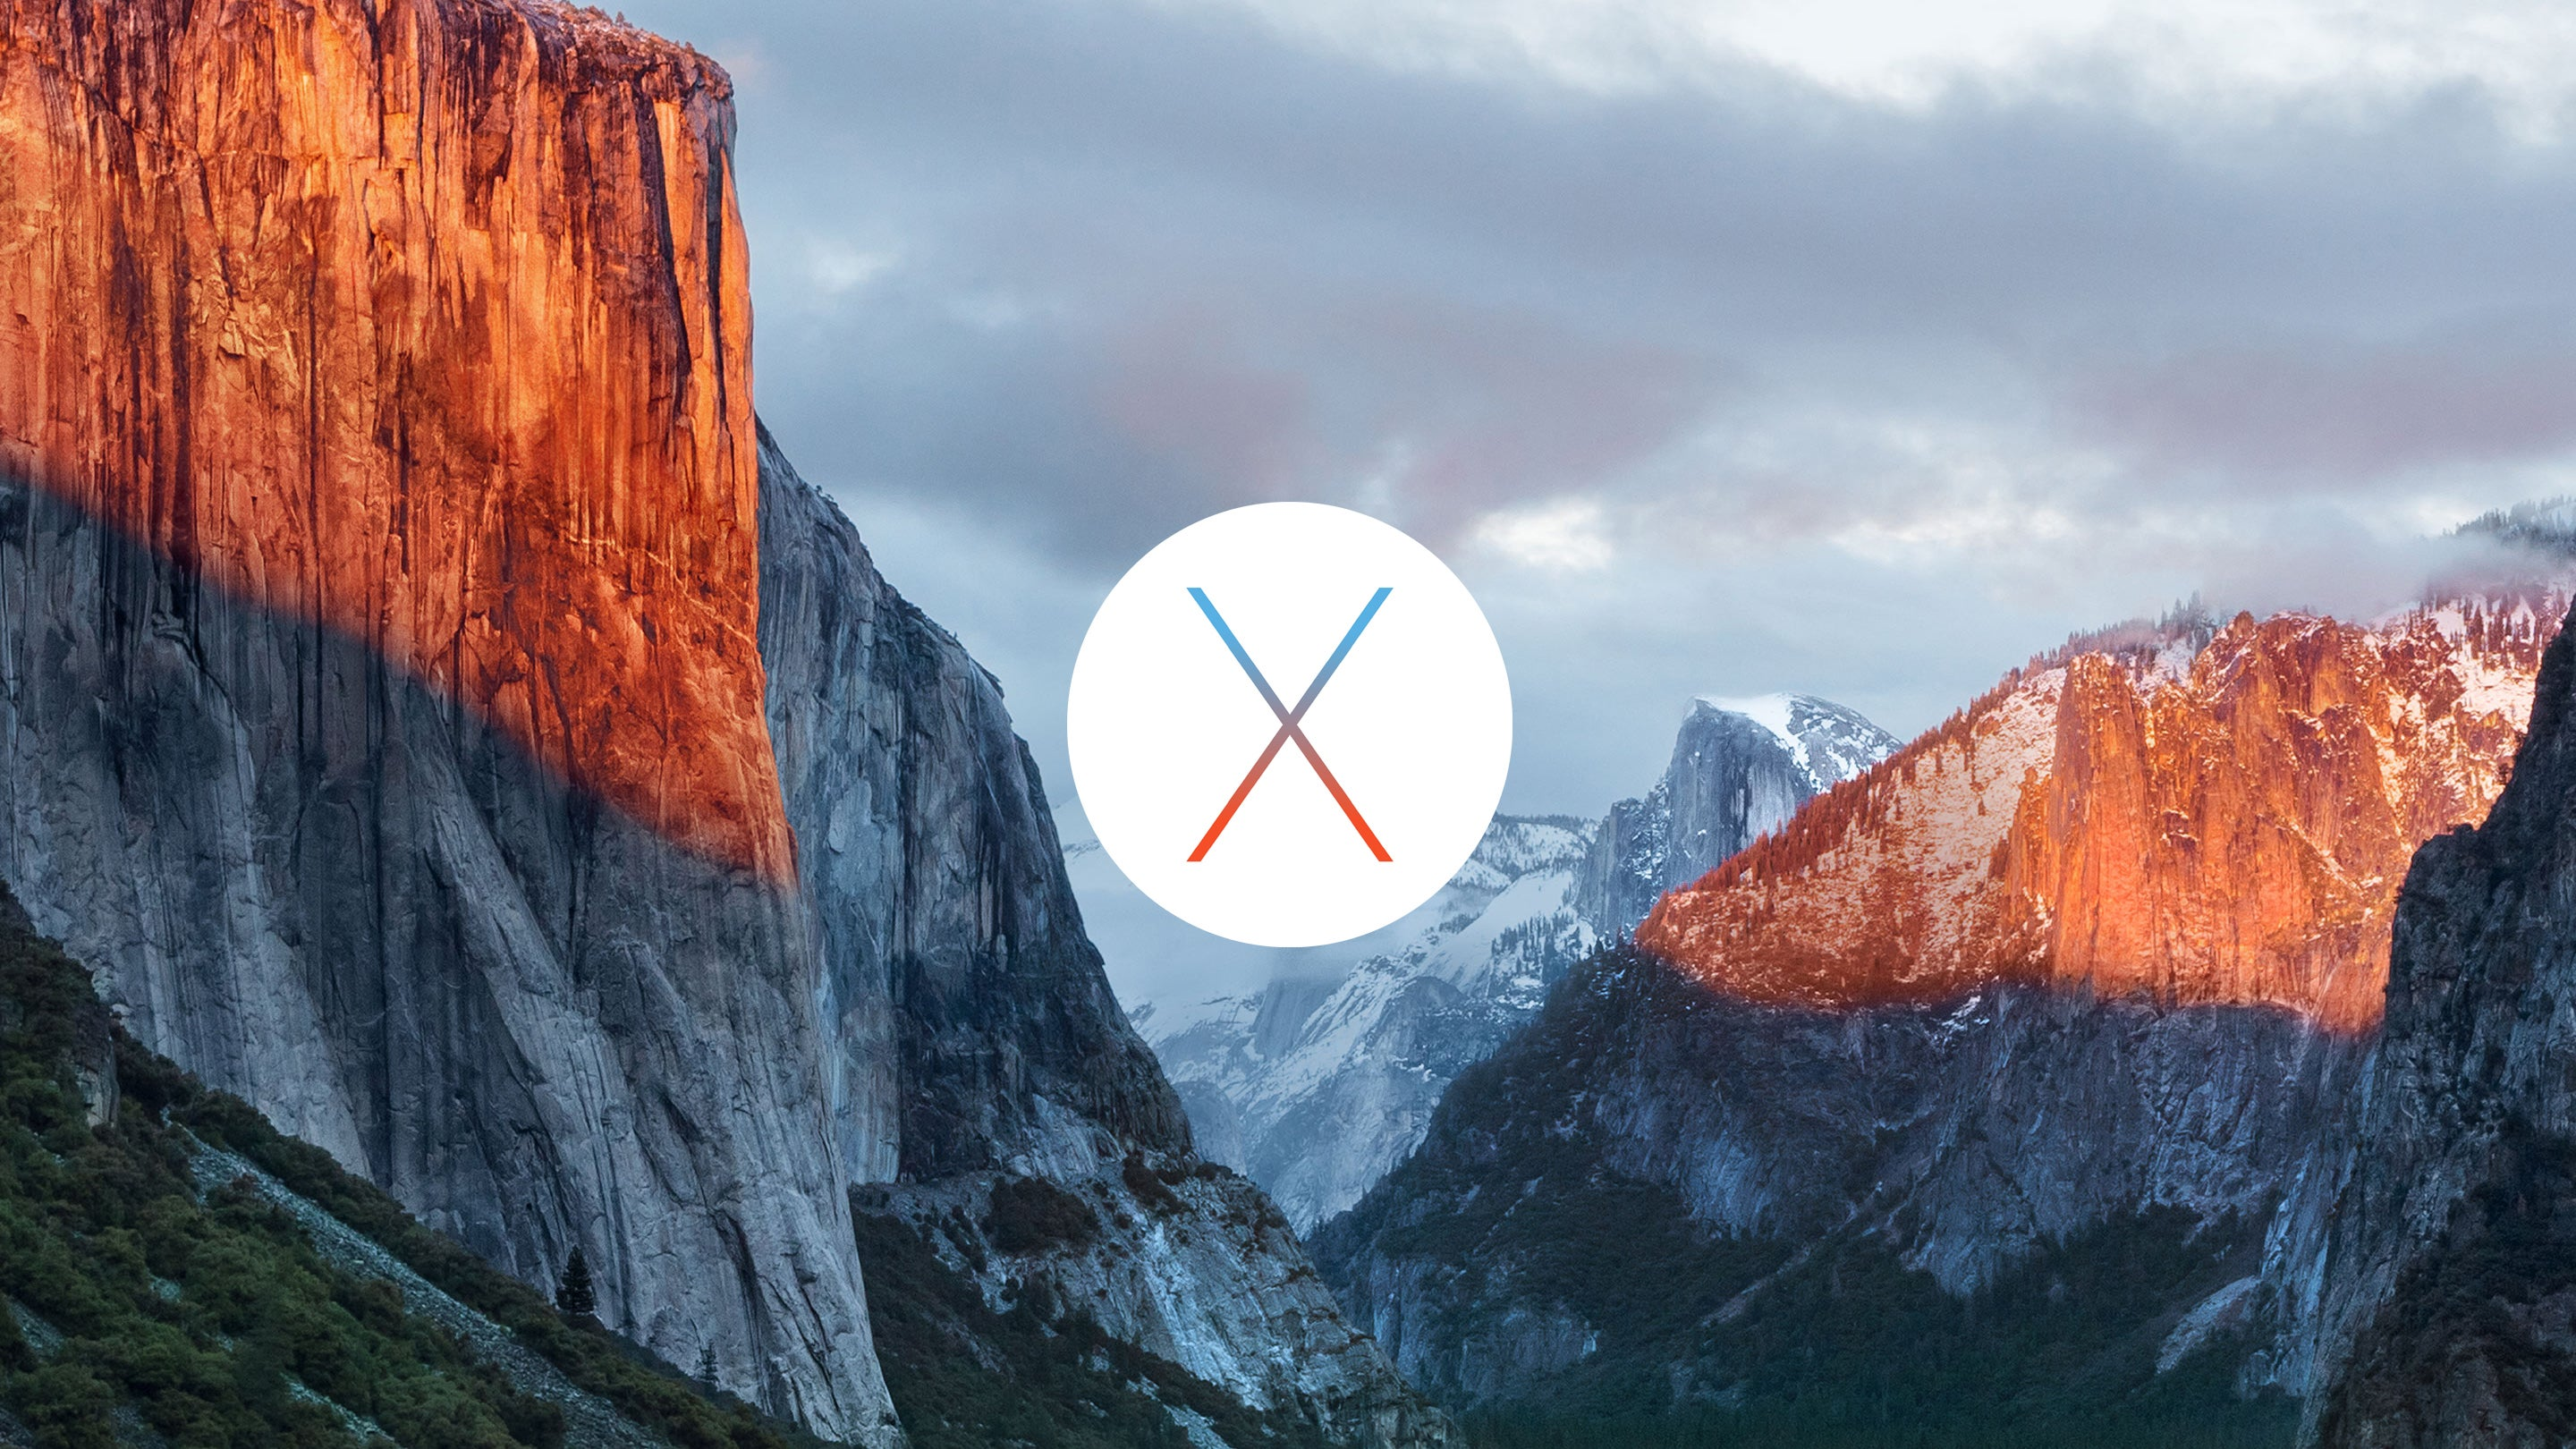 4 Design Tweaks That Make El Capitan Worth the Upgrade